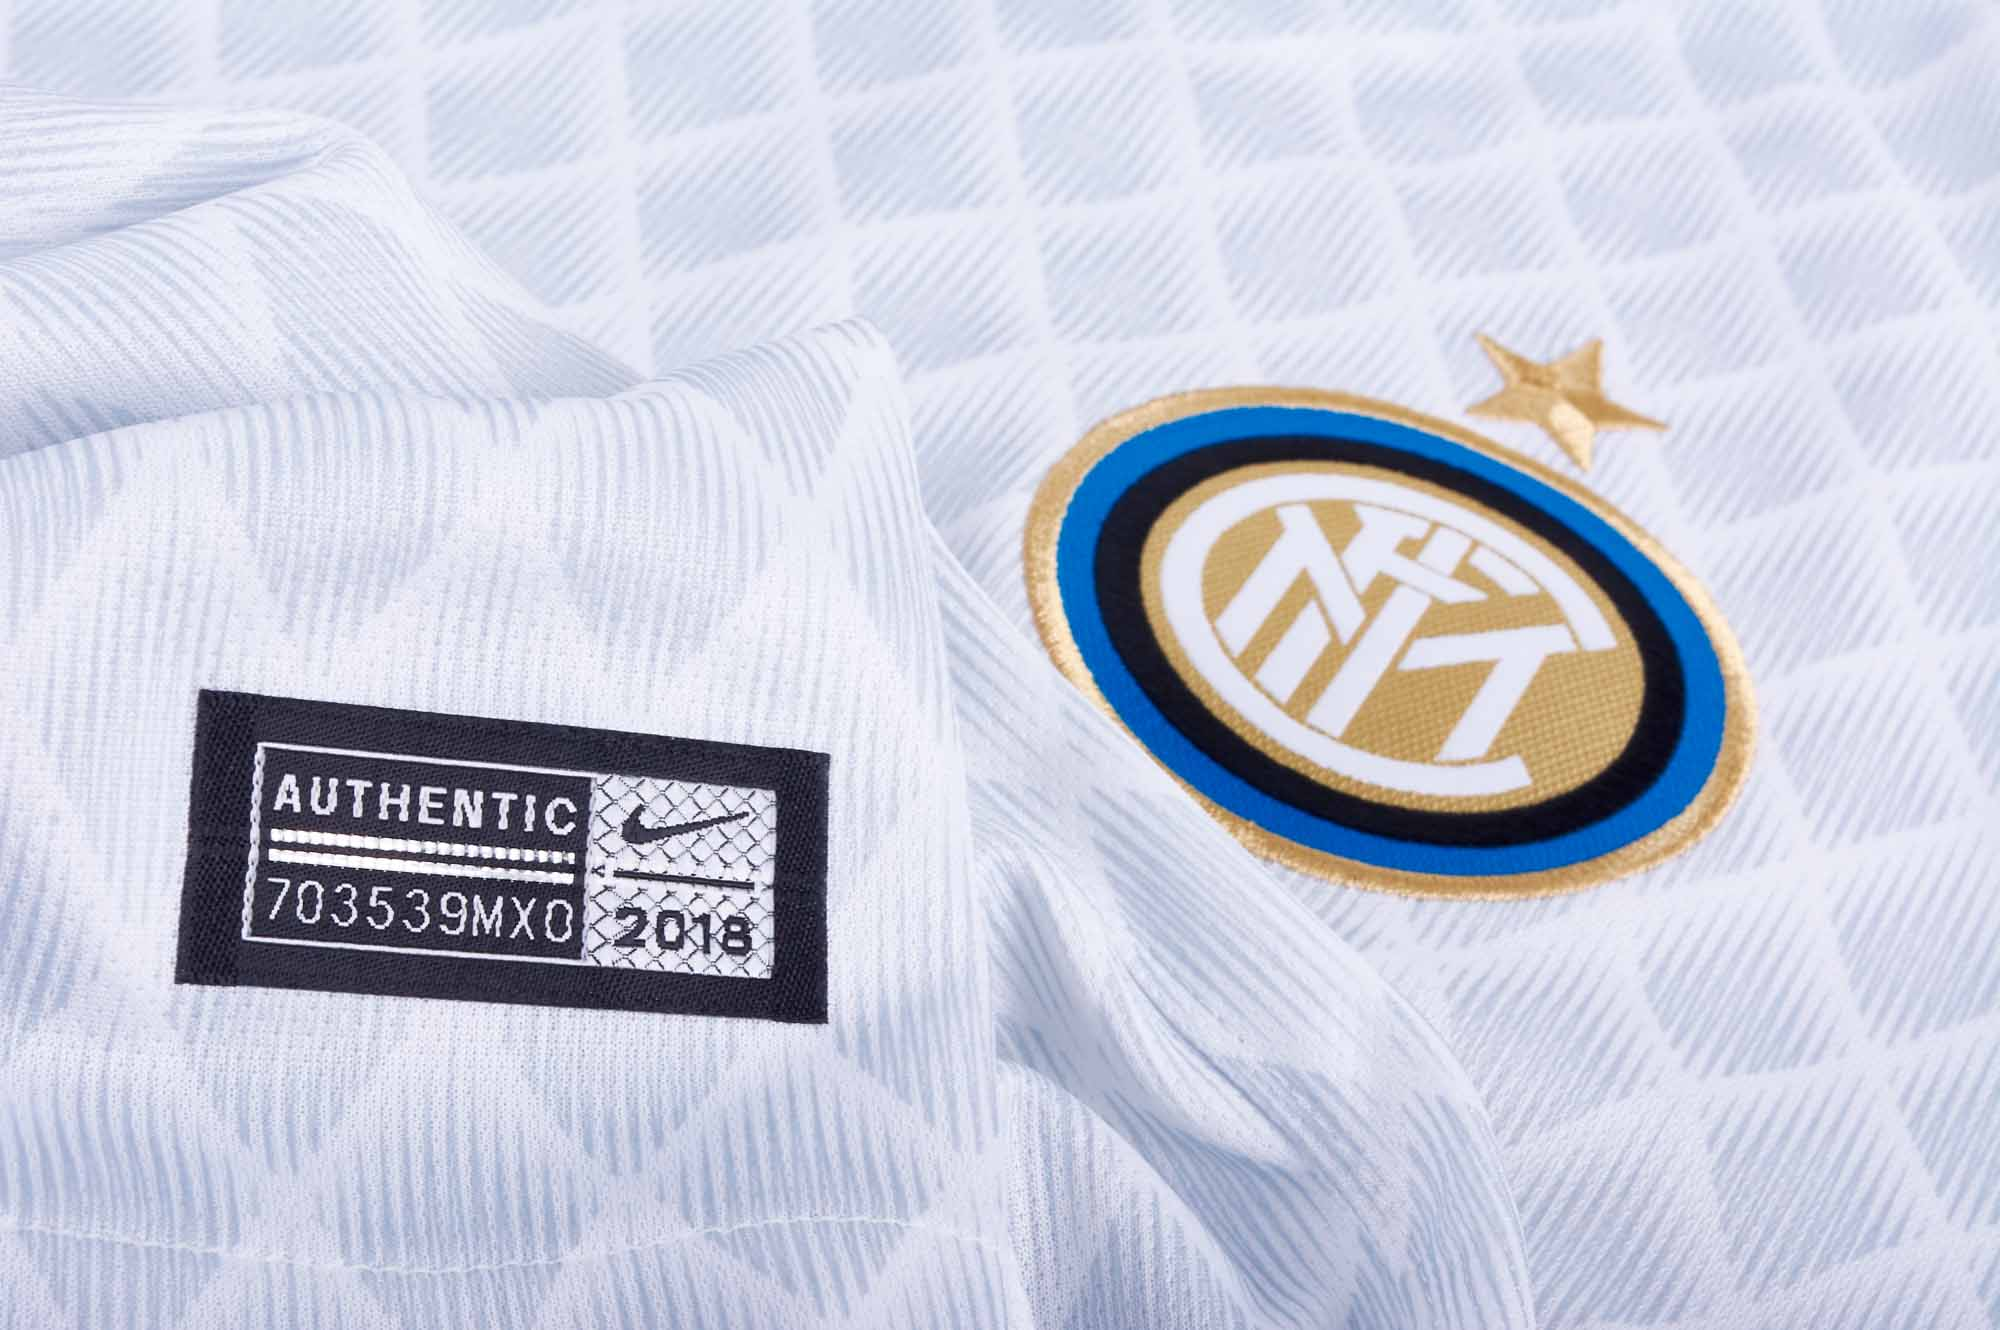 Mens Nike Inter Milan 2018/19 Shirt     Size: Medium     918998-101